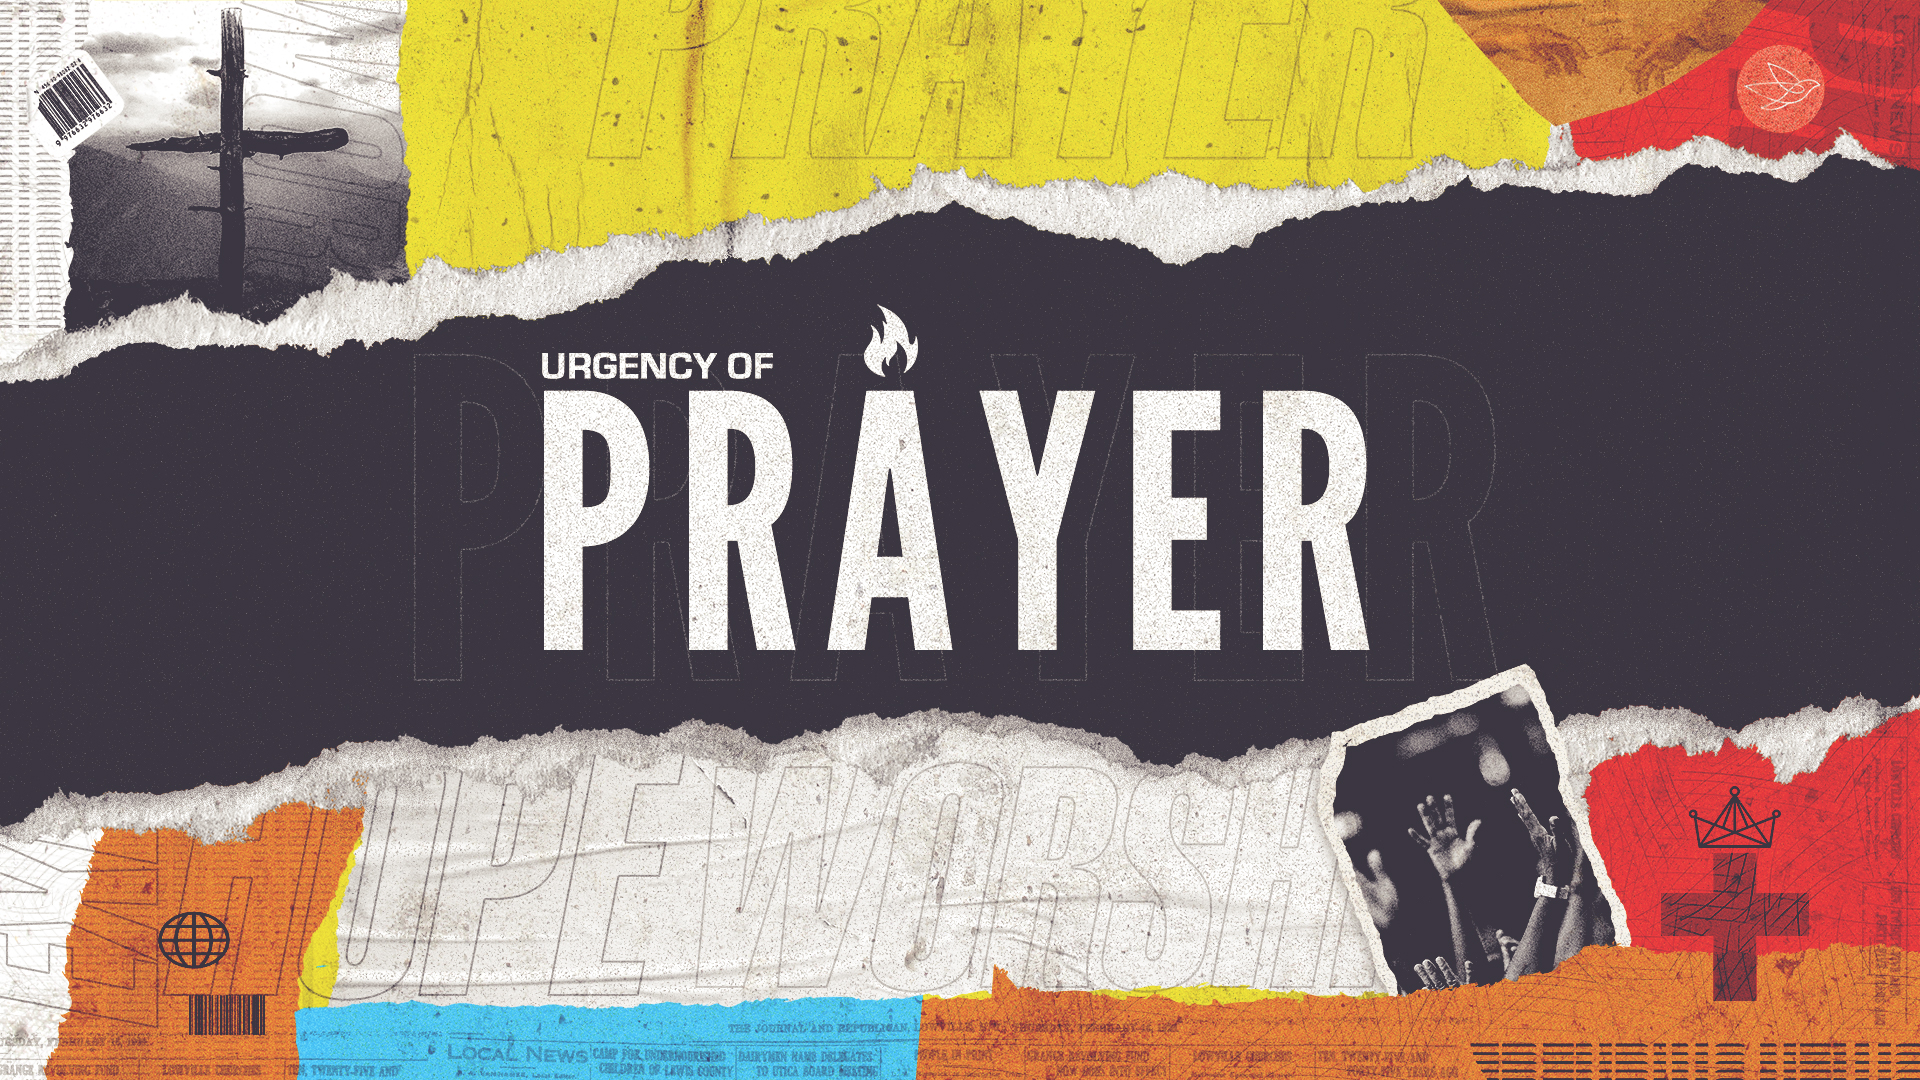 Urgency of Prayer